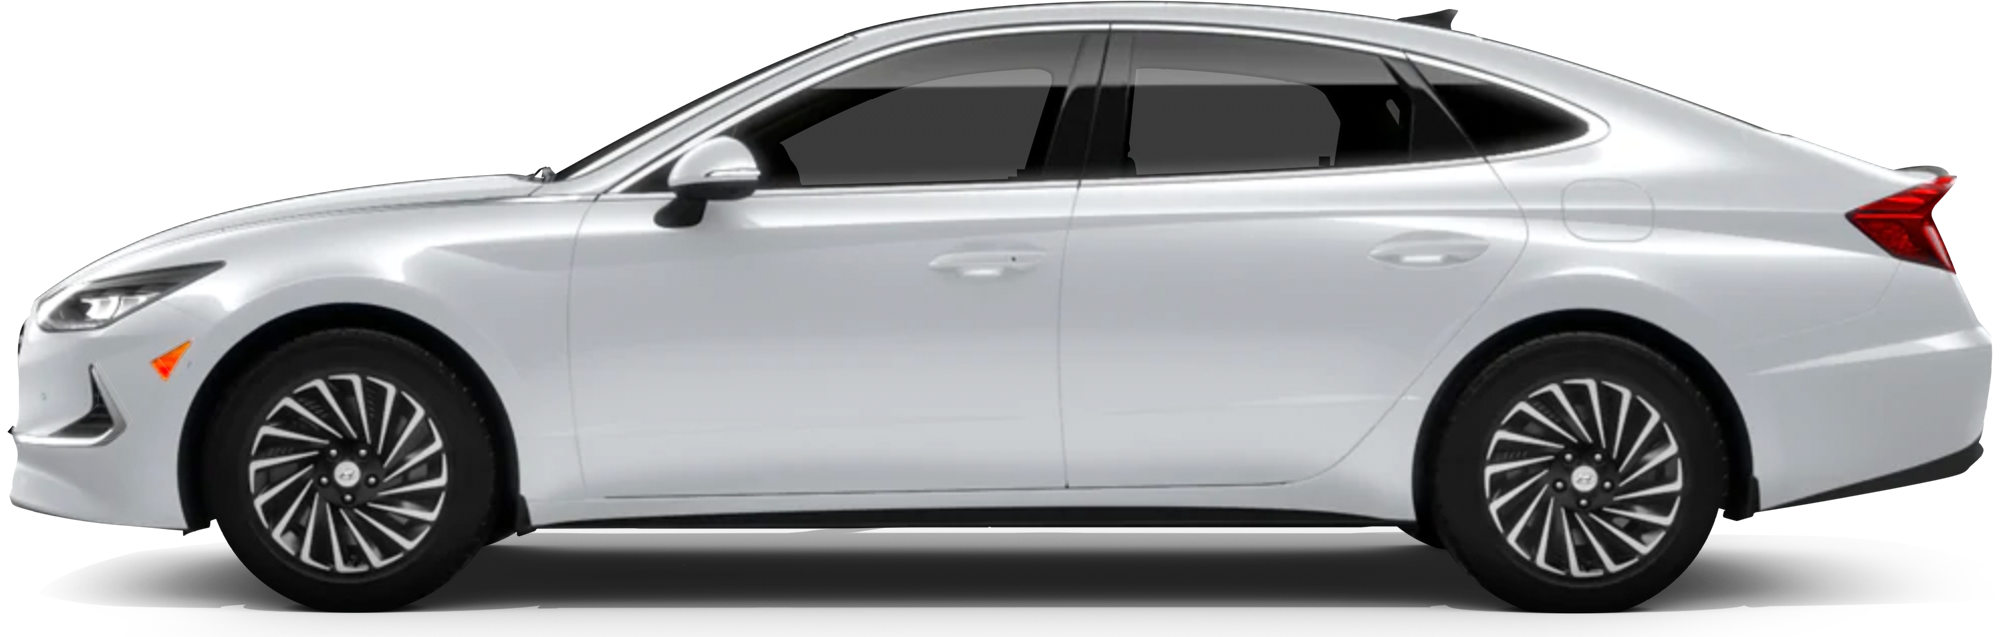 2021 Hyundai Sonata Hybrid Sedan Ultimate